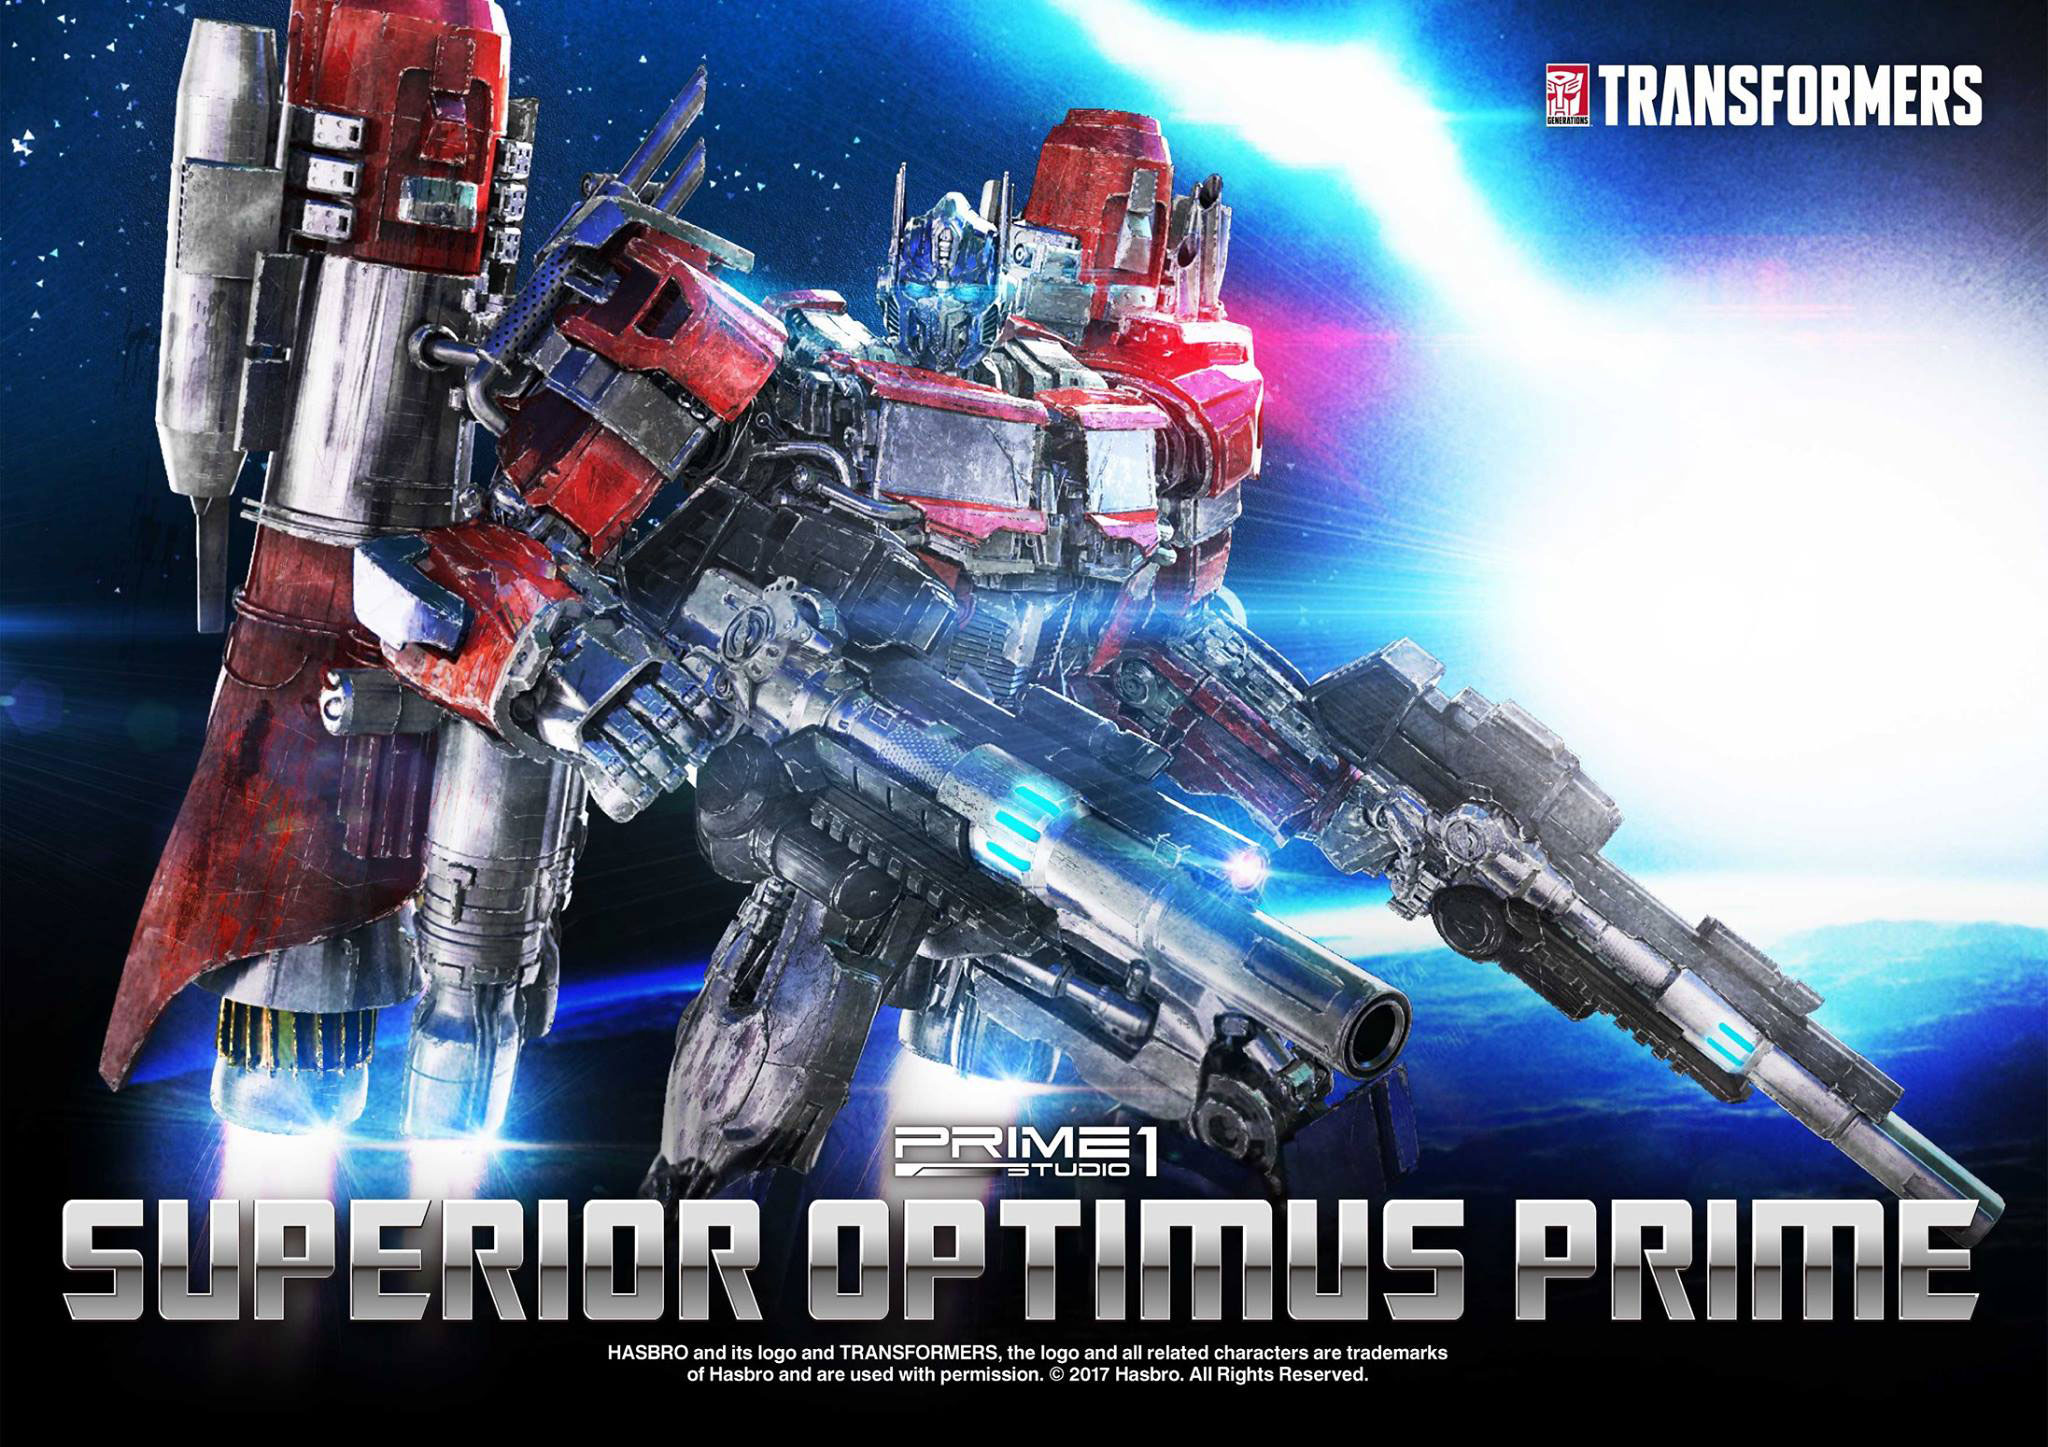 transformers-superior-optimus-prime-by-prime-1-studio